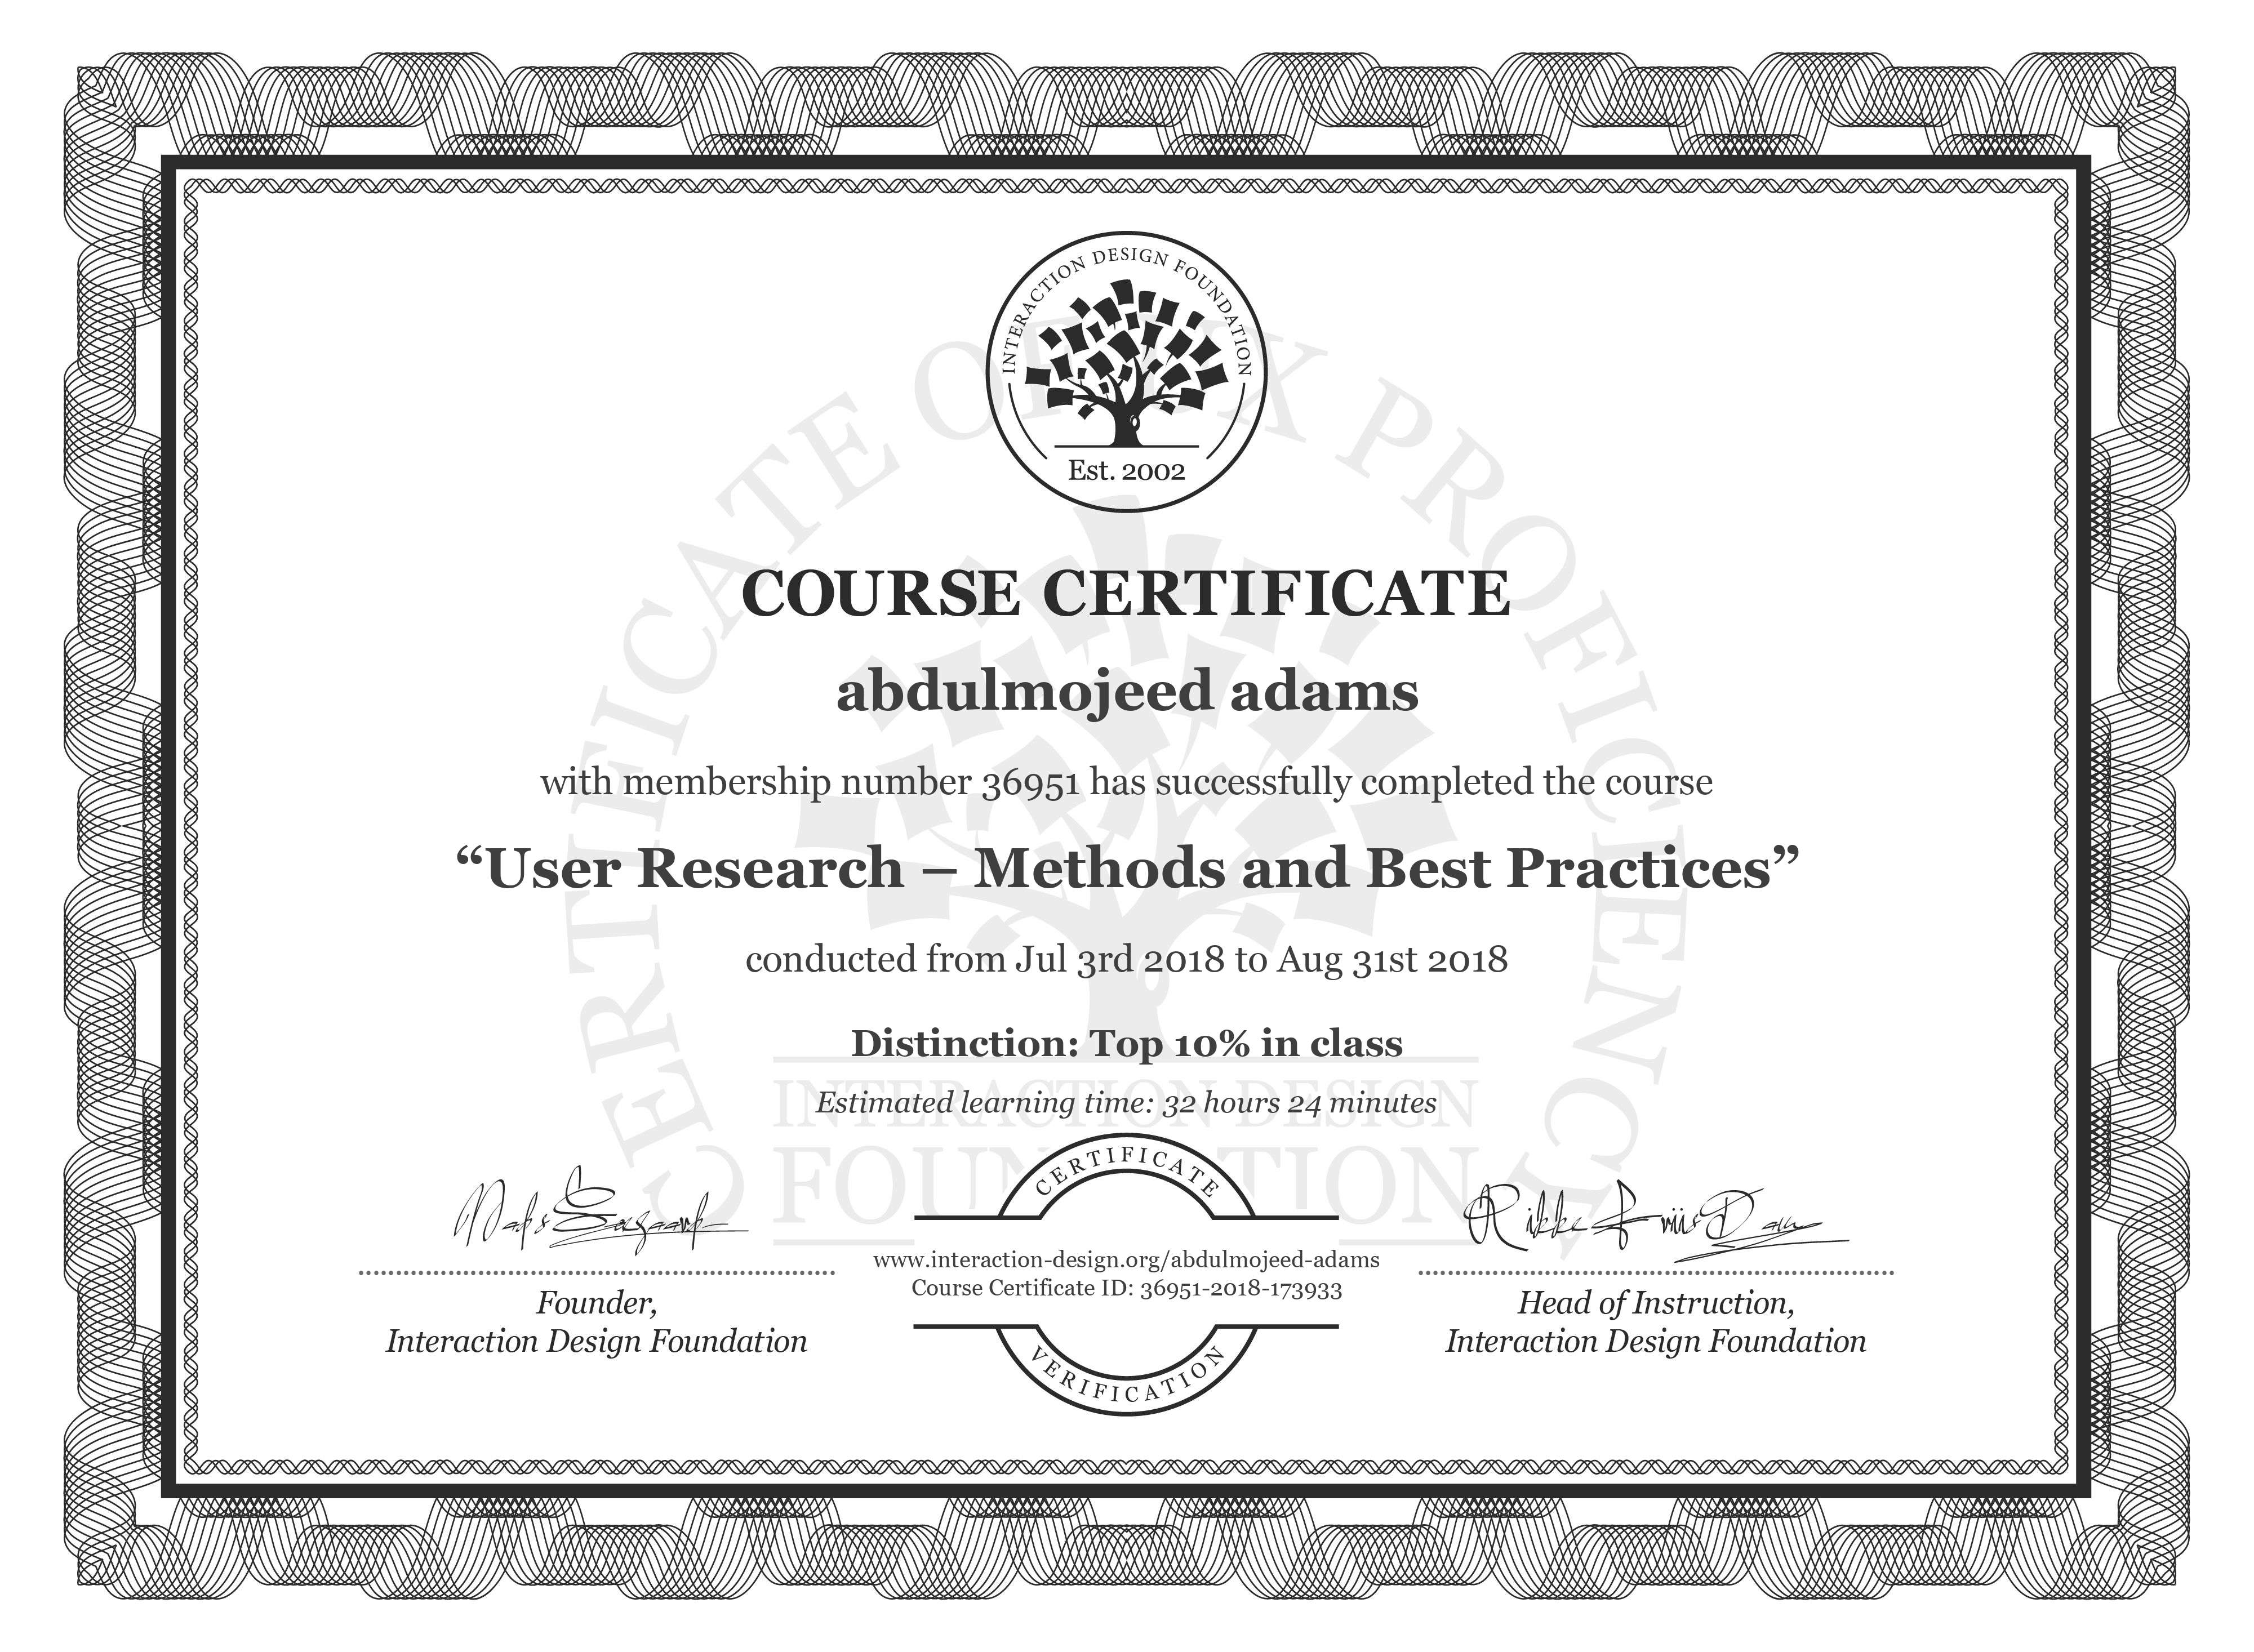 abdulmojeed adams's Course Certificate: User Research – Methods and Best Practices